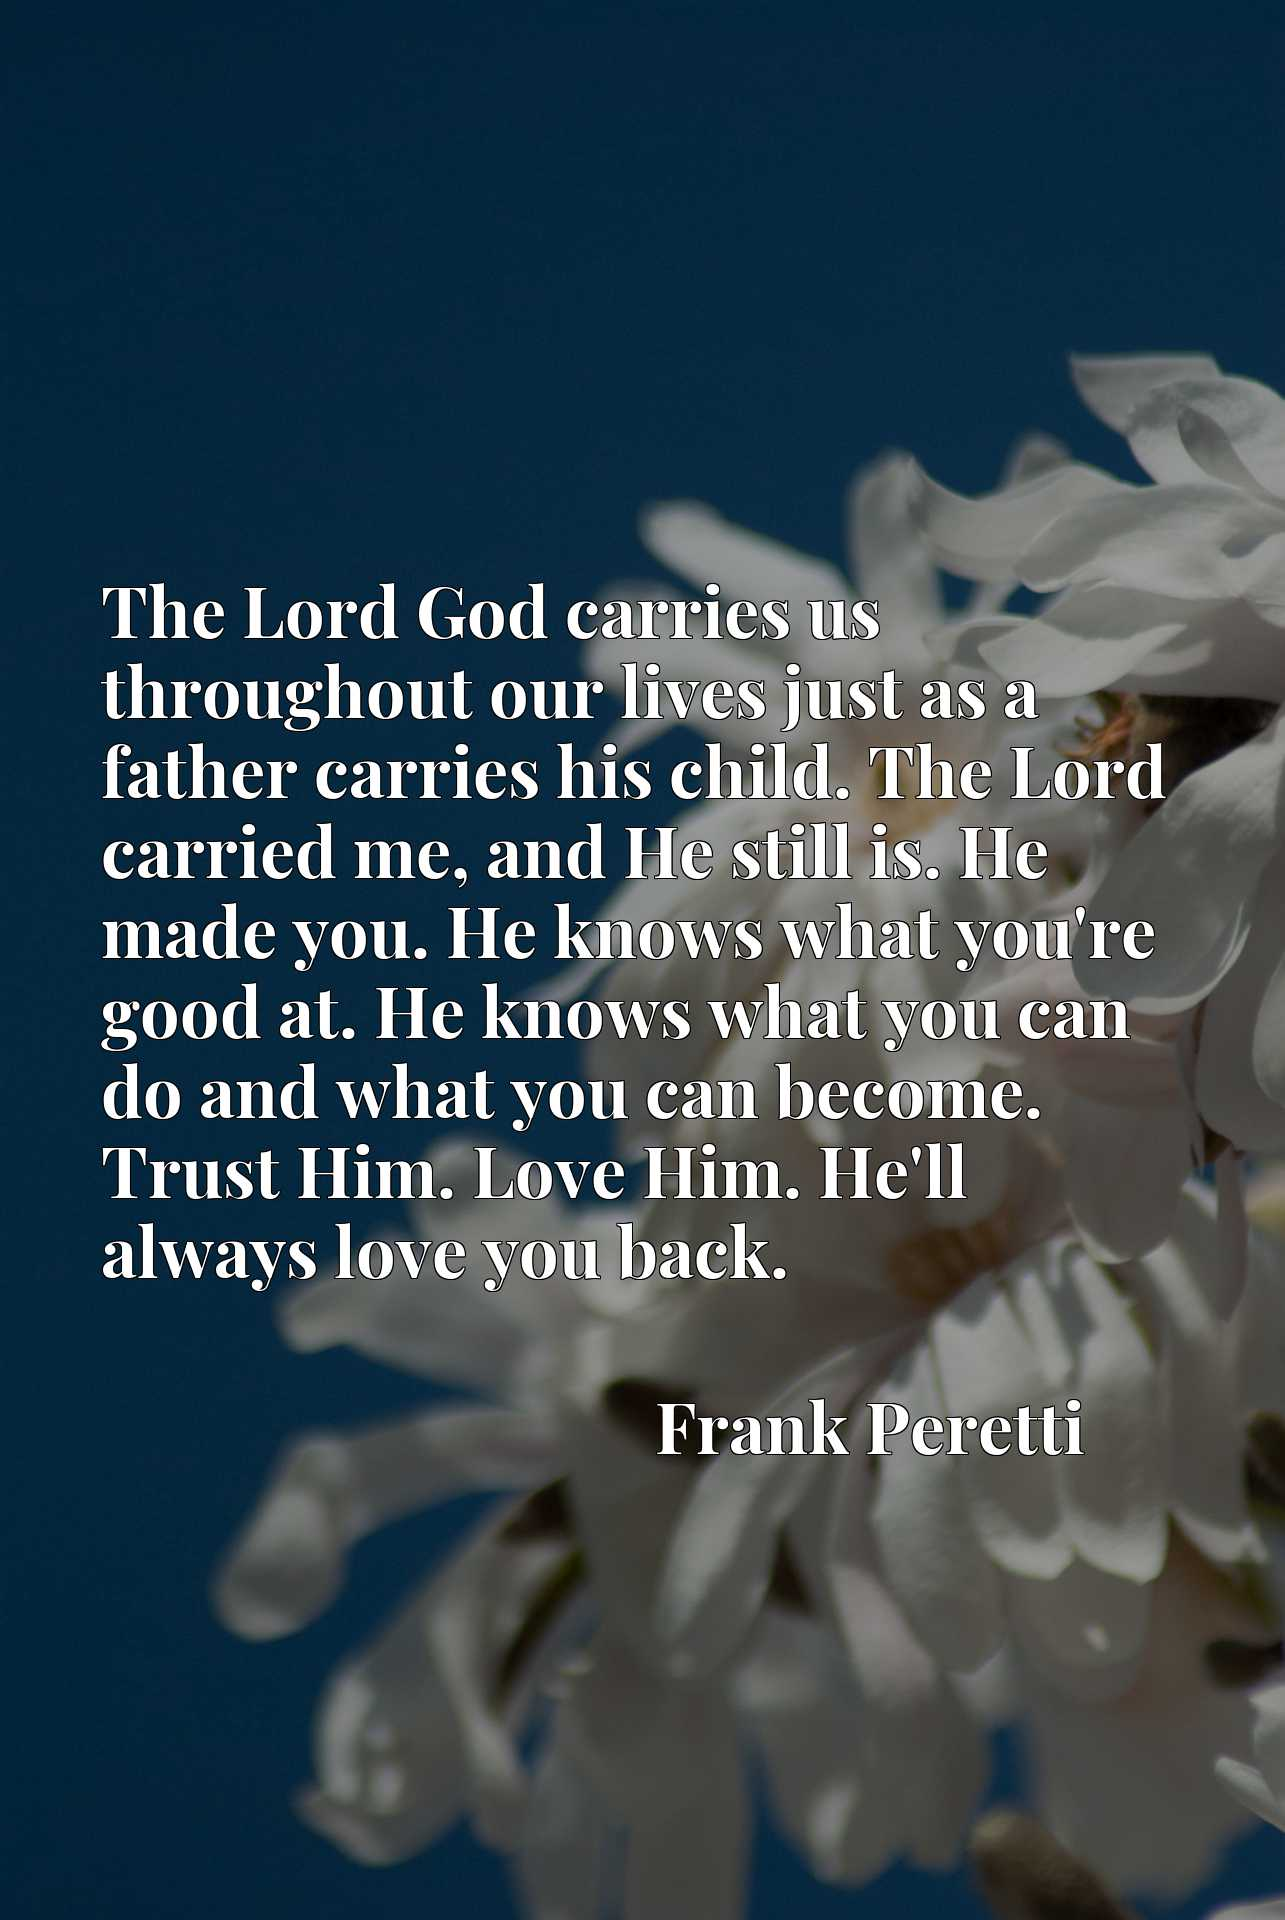 The Lord God carries us throughout our lives just as a father carries his child. The Lord carried me, and He still is. He made you. He knows what you're good at. He knows what you can do and what you can become. Trust Him. Love Him. He'll always love you back.